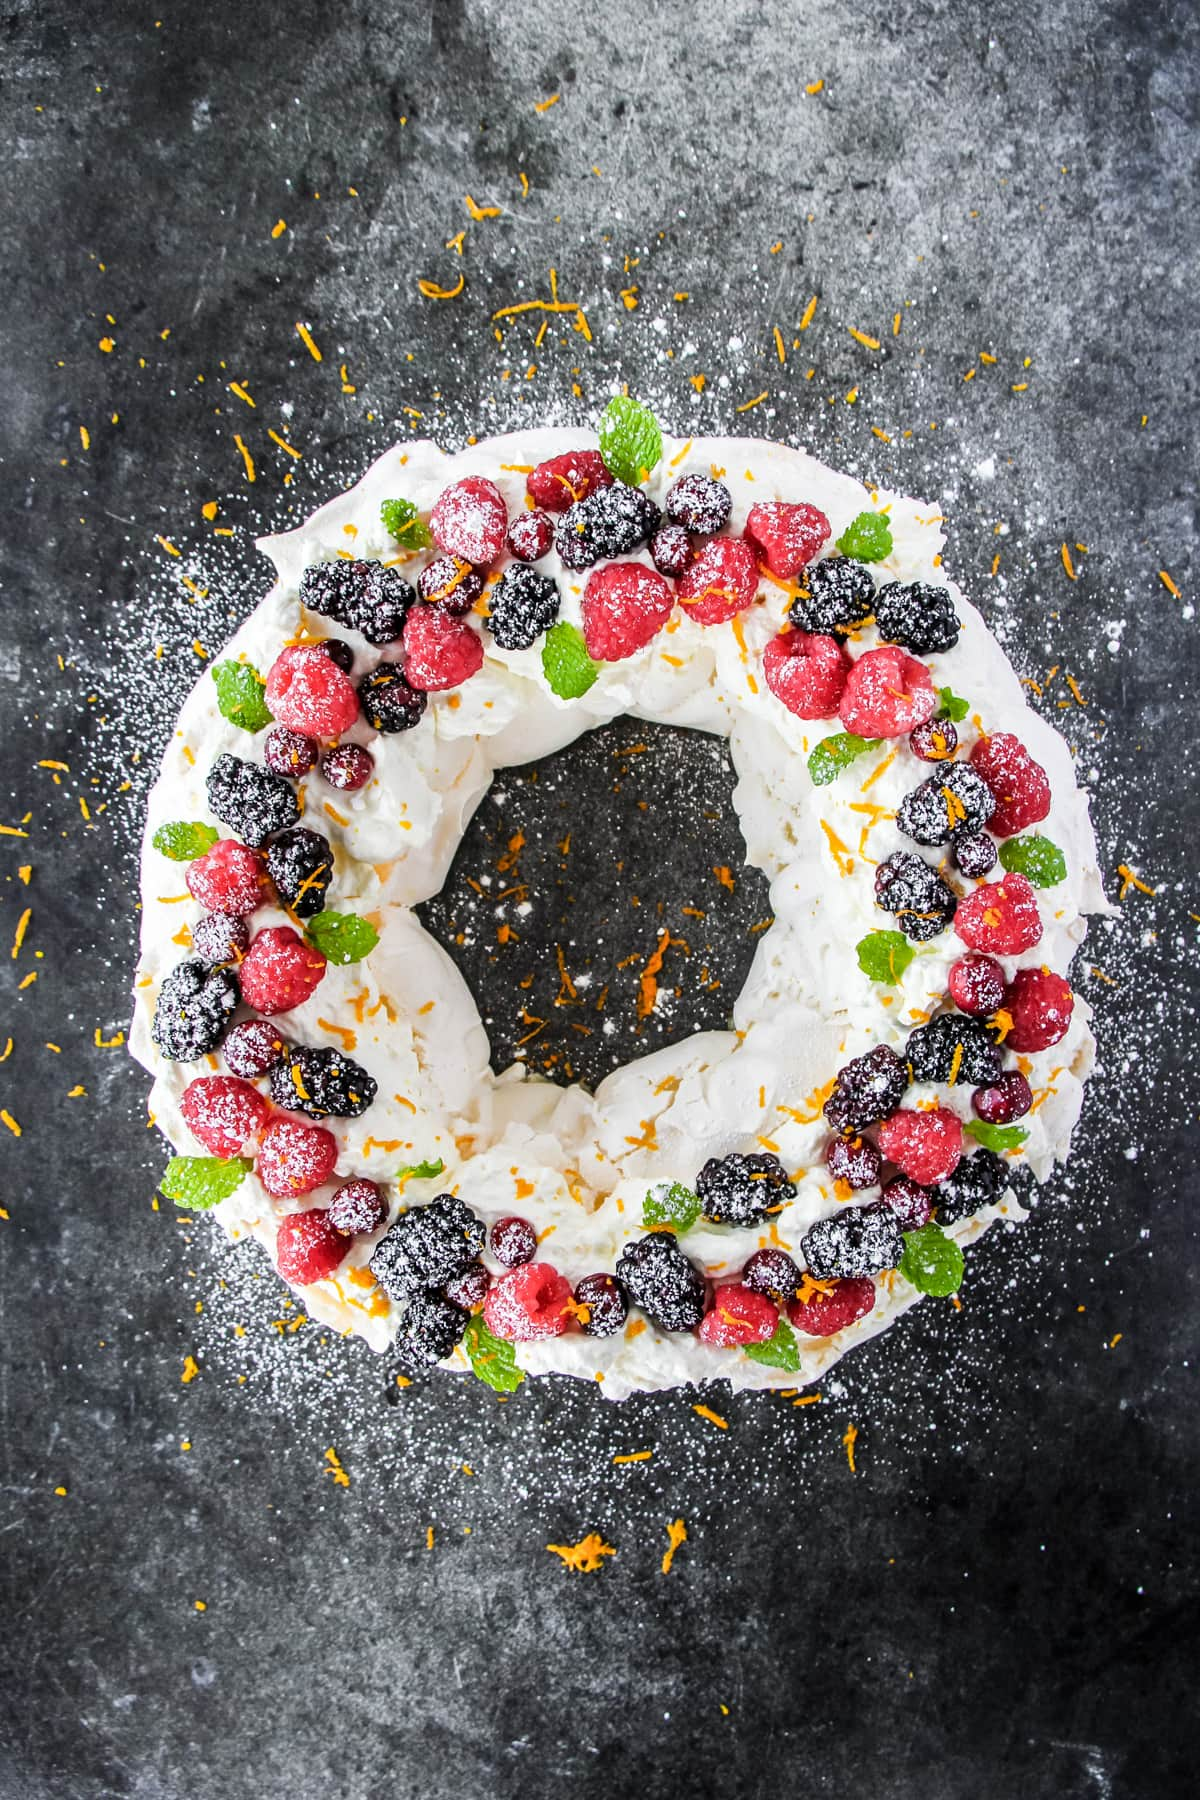 A top down view of a pavlova in the shape of a circle (wreath), decorated with fresh raspberries, blackberries, cranberries, mint leaves, orange zest and a dusting of confectioner's sugar